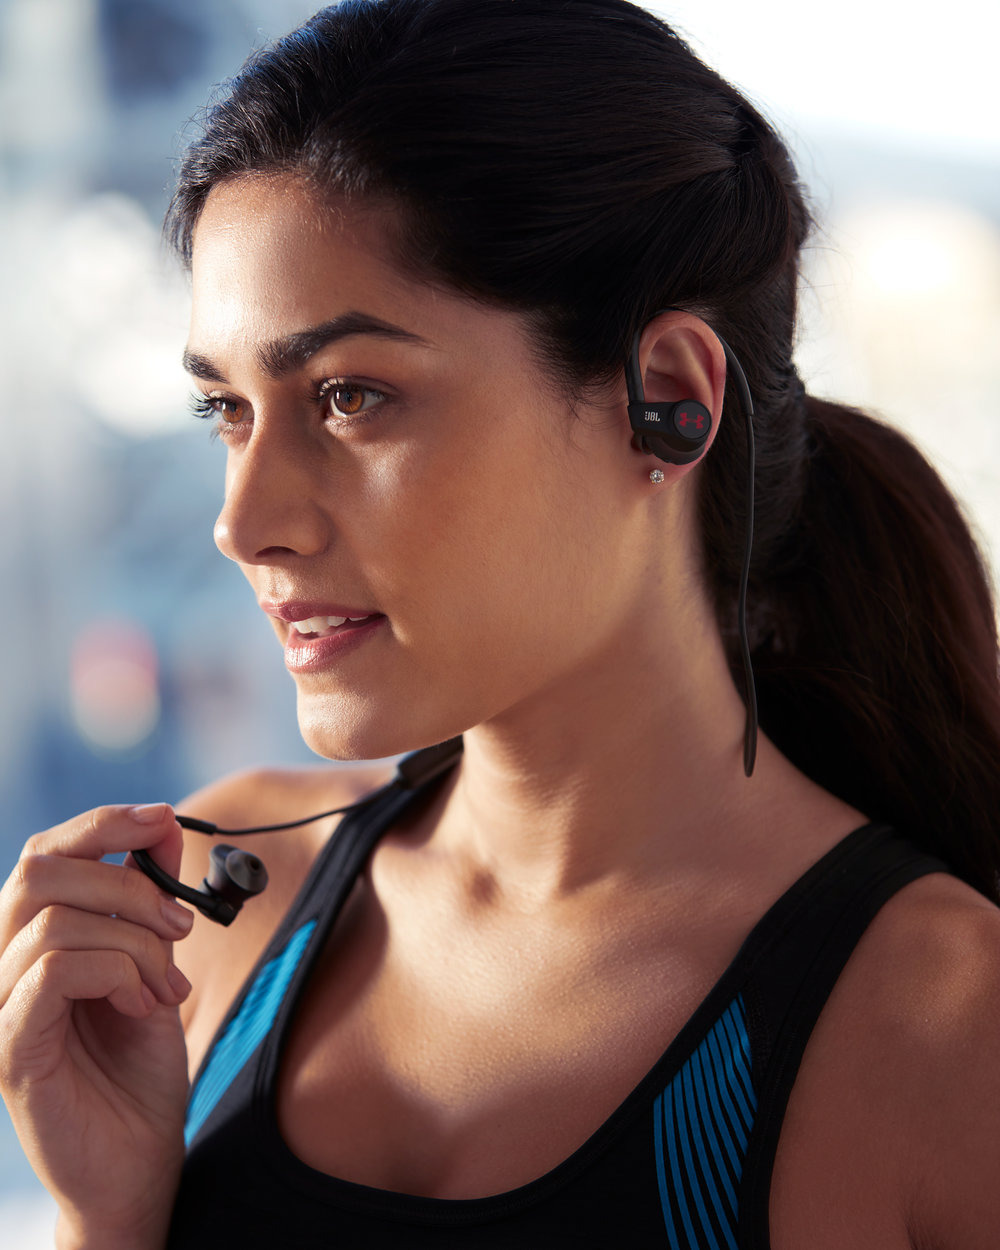 JBL/Under Armor Sport Wireless Heart Rate